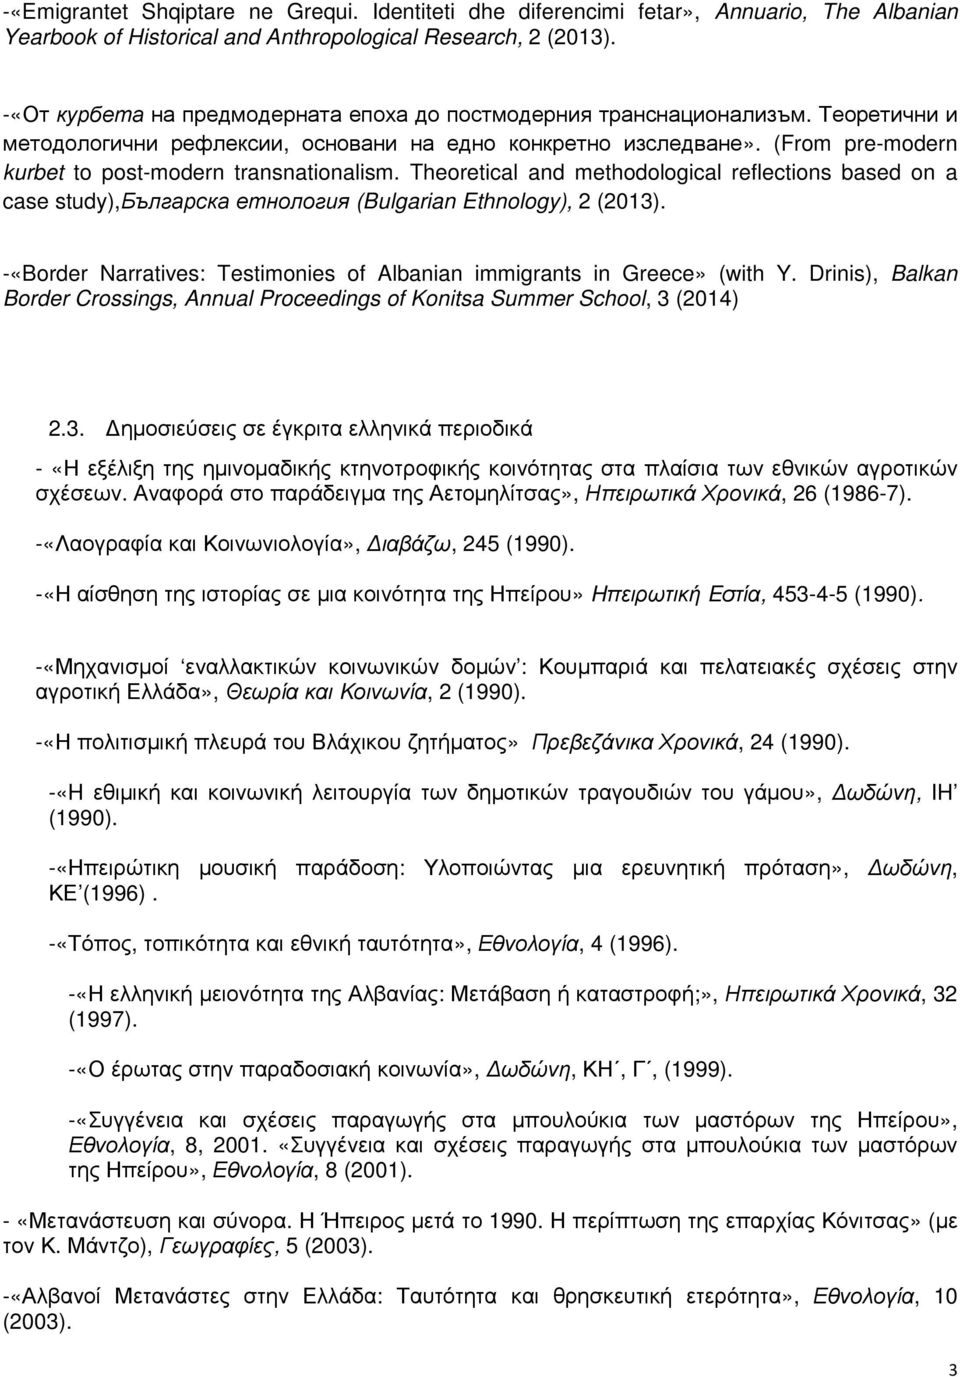 (From pre-modern kurbet to post-modern transnationalism. Theoretical and methodological reflections based on a case study),българска етнология (Bulgarian Ethnology), 2 (2013).